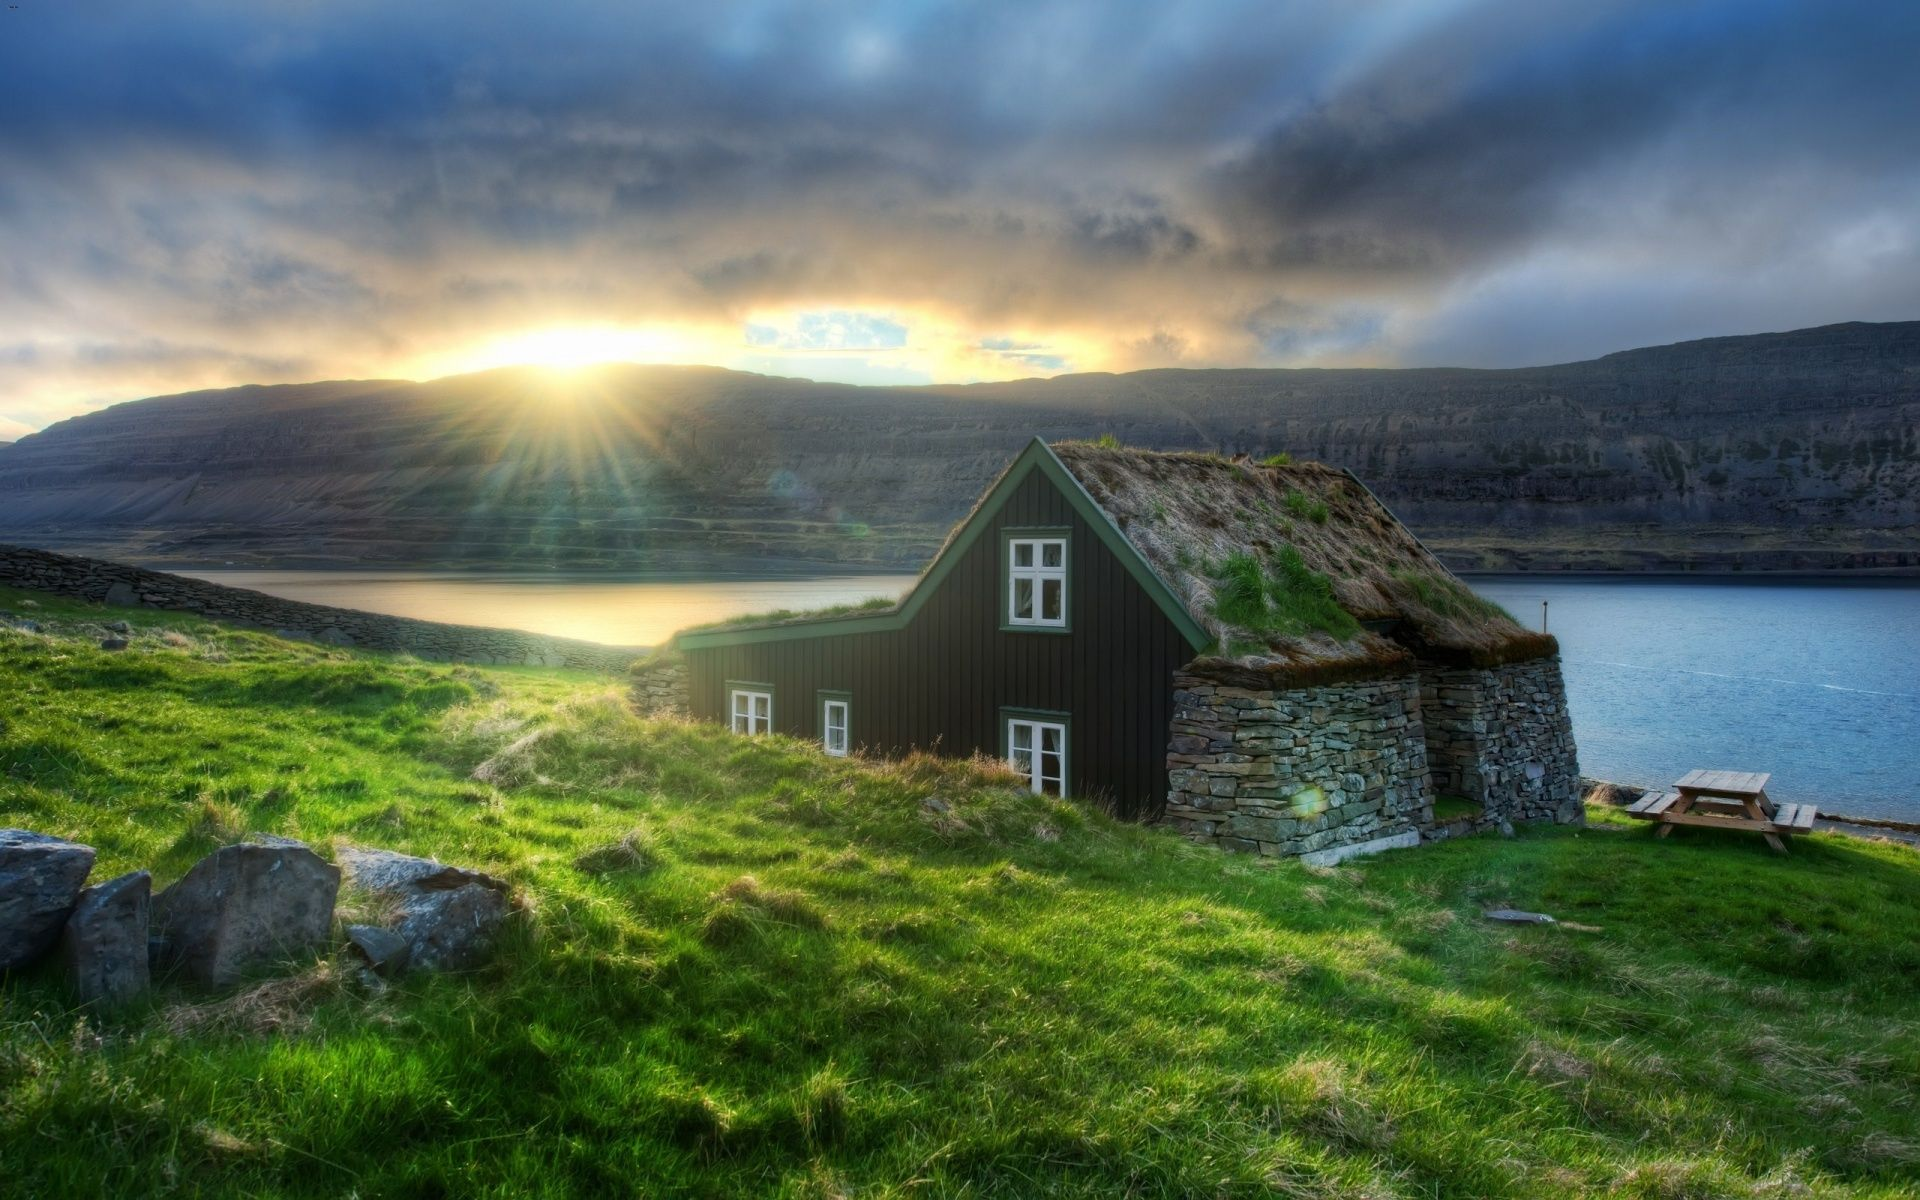 Scotland Hd Wallpapers Full Hd Pictures Turf House Dream Cottage Architecture